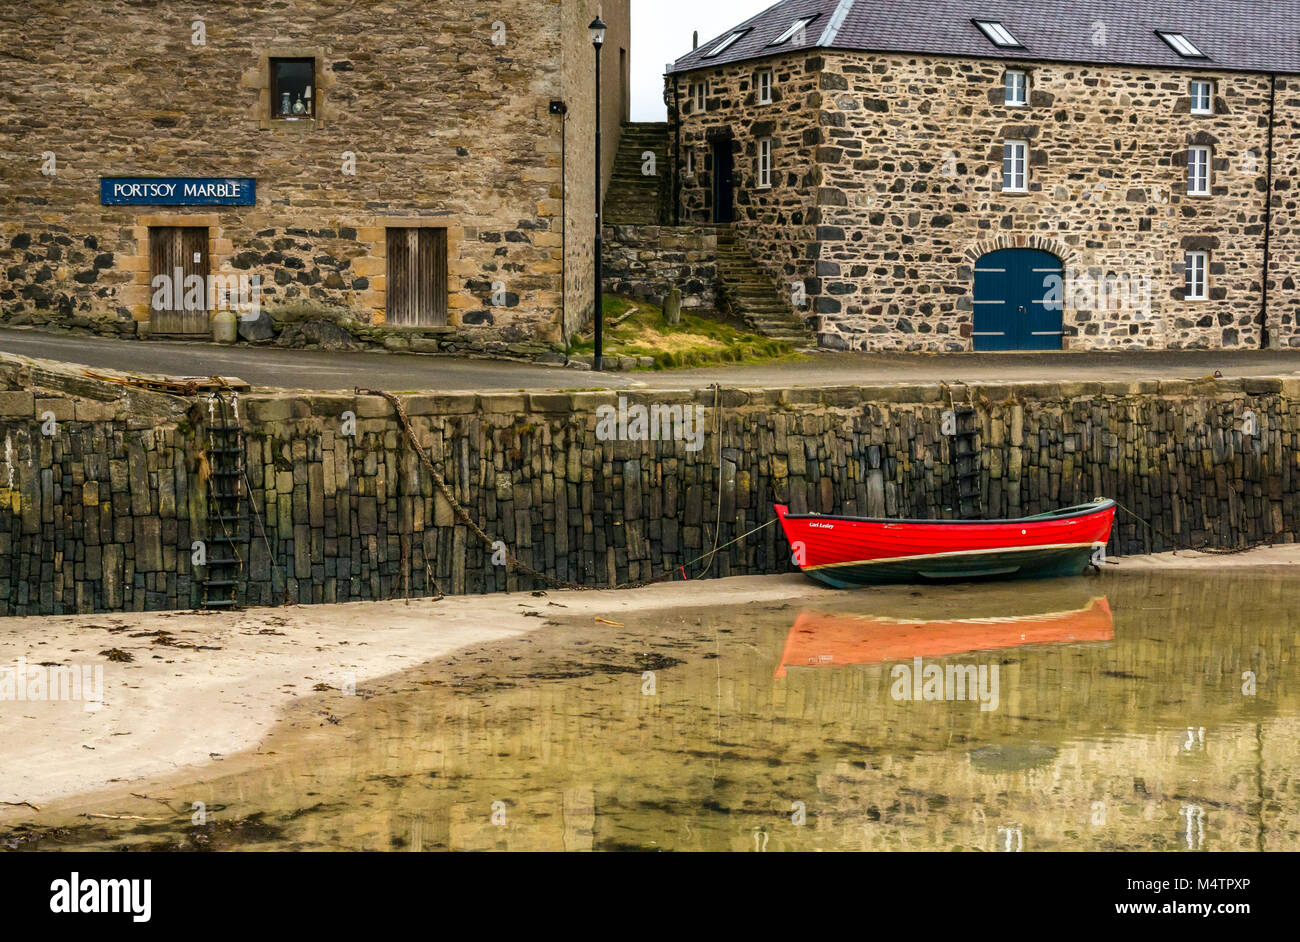 Rowing Boat Water Scotland Stock Photos & Rowing Boat Water Scotland ...